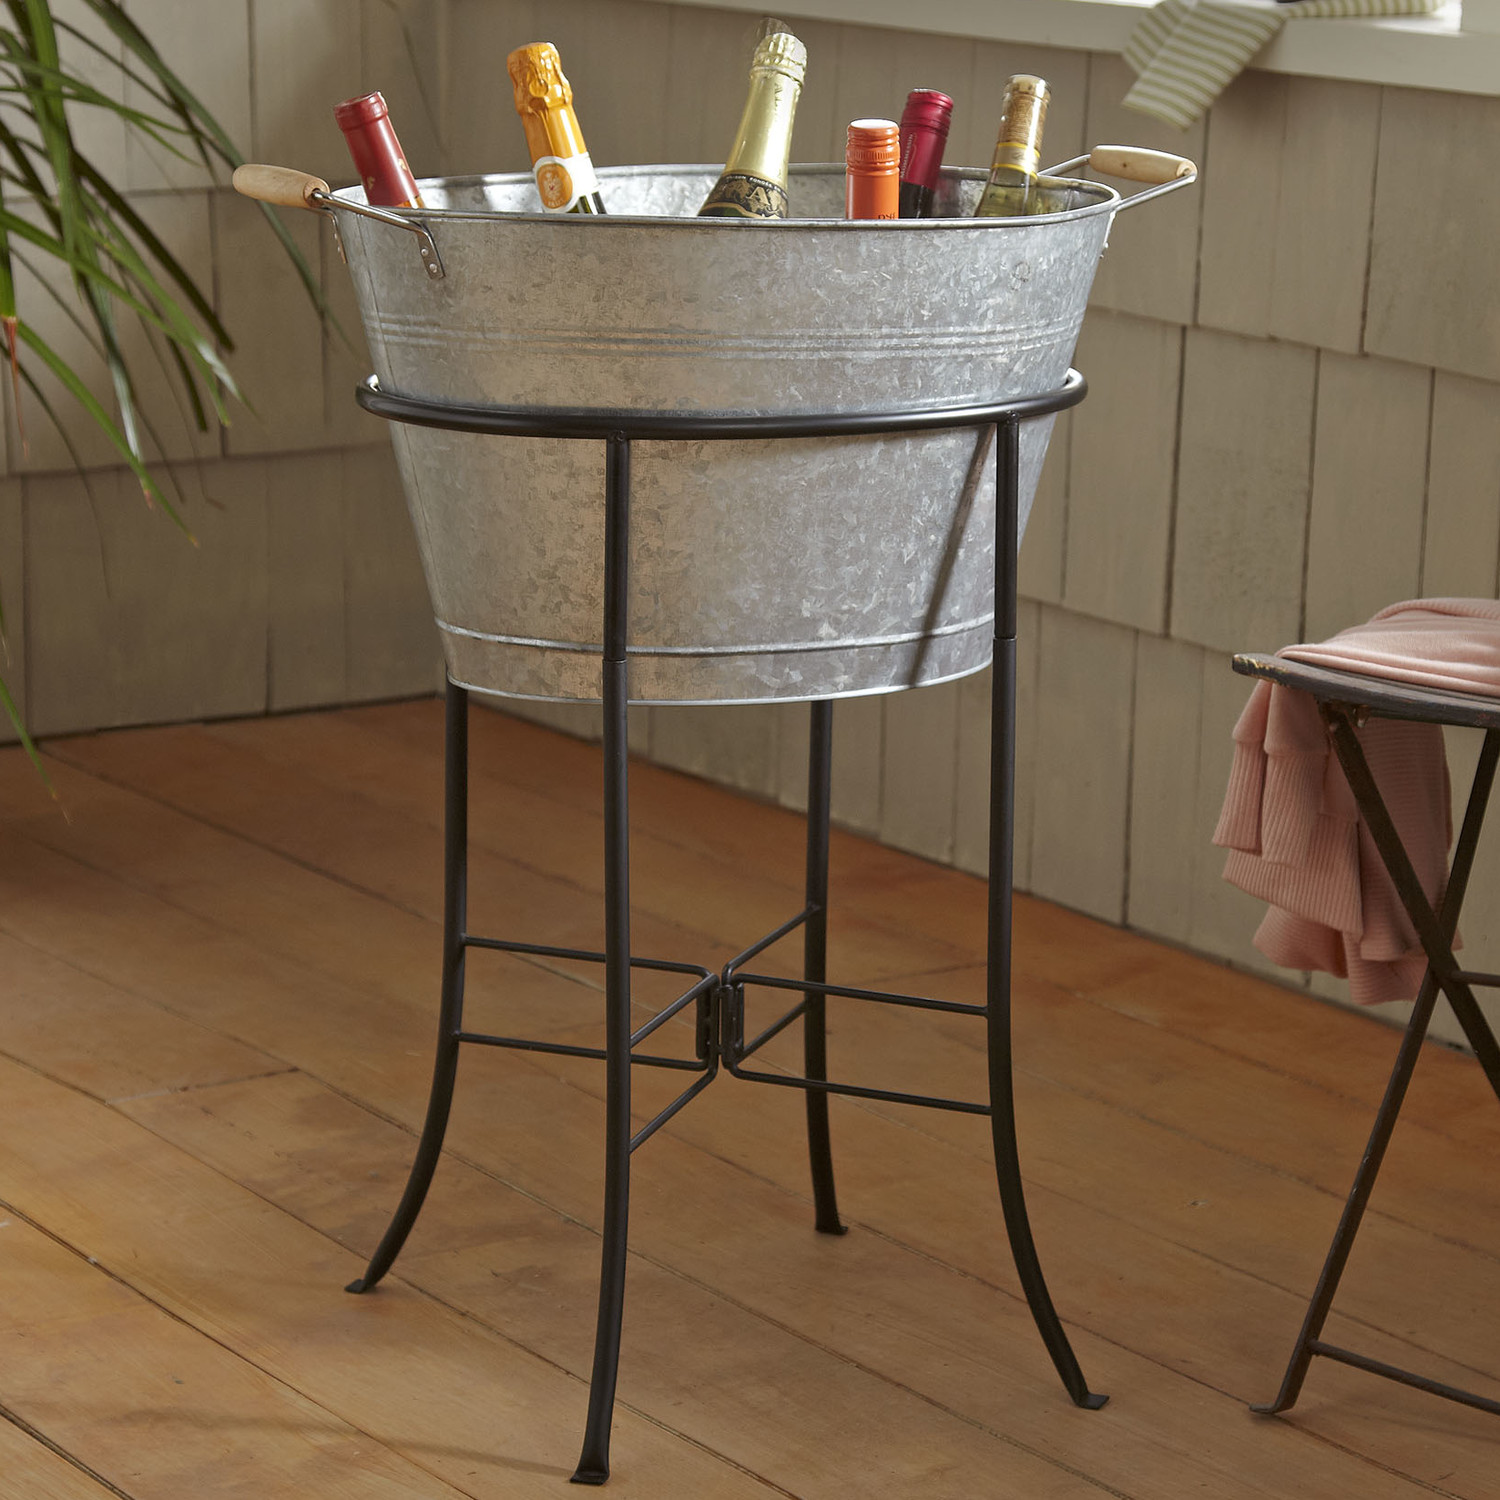 Choose a large ice bucket and opt for one with a stand if you're short on table surface space. Alternatively, choose a tabletop wine chiller designed to hold up to four separate bottles. These chillers sport a separate ice compartment to keep bottles cool and dry.